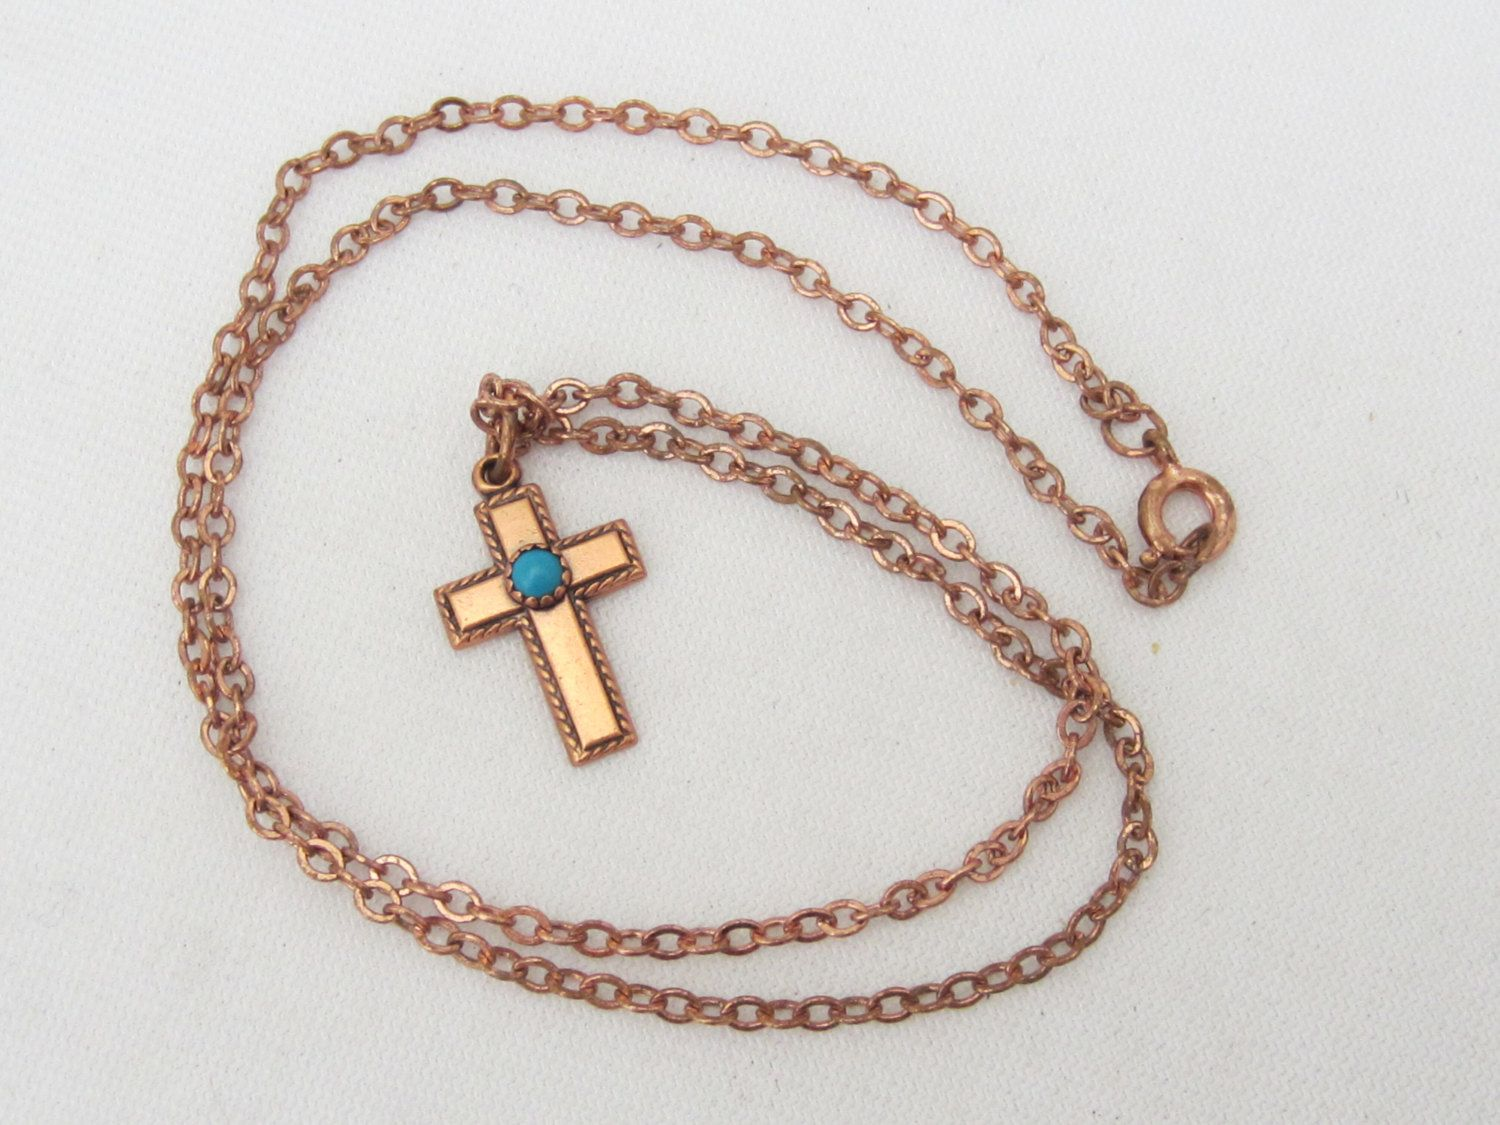 Vintage Solid Copper Turquoise CROSS Jewelry Pendant Chain 18'' Length by wandajewelry2013 on Etsy